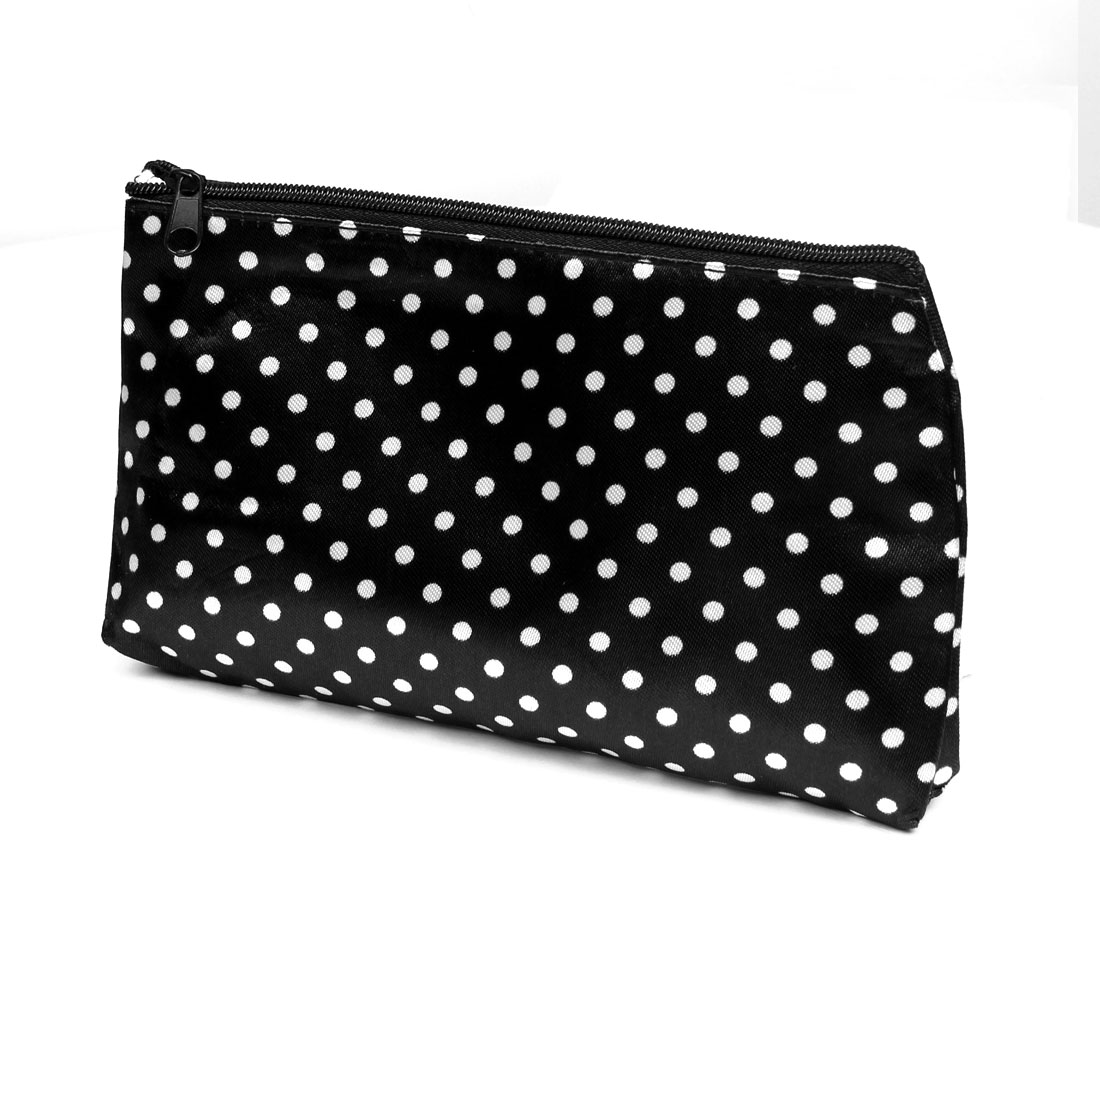 White Polka Dotted Printed Zipper Closure Makeup Pouch Bag Black for Women